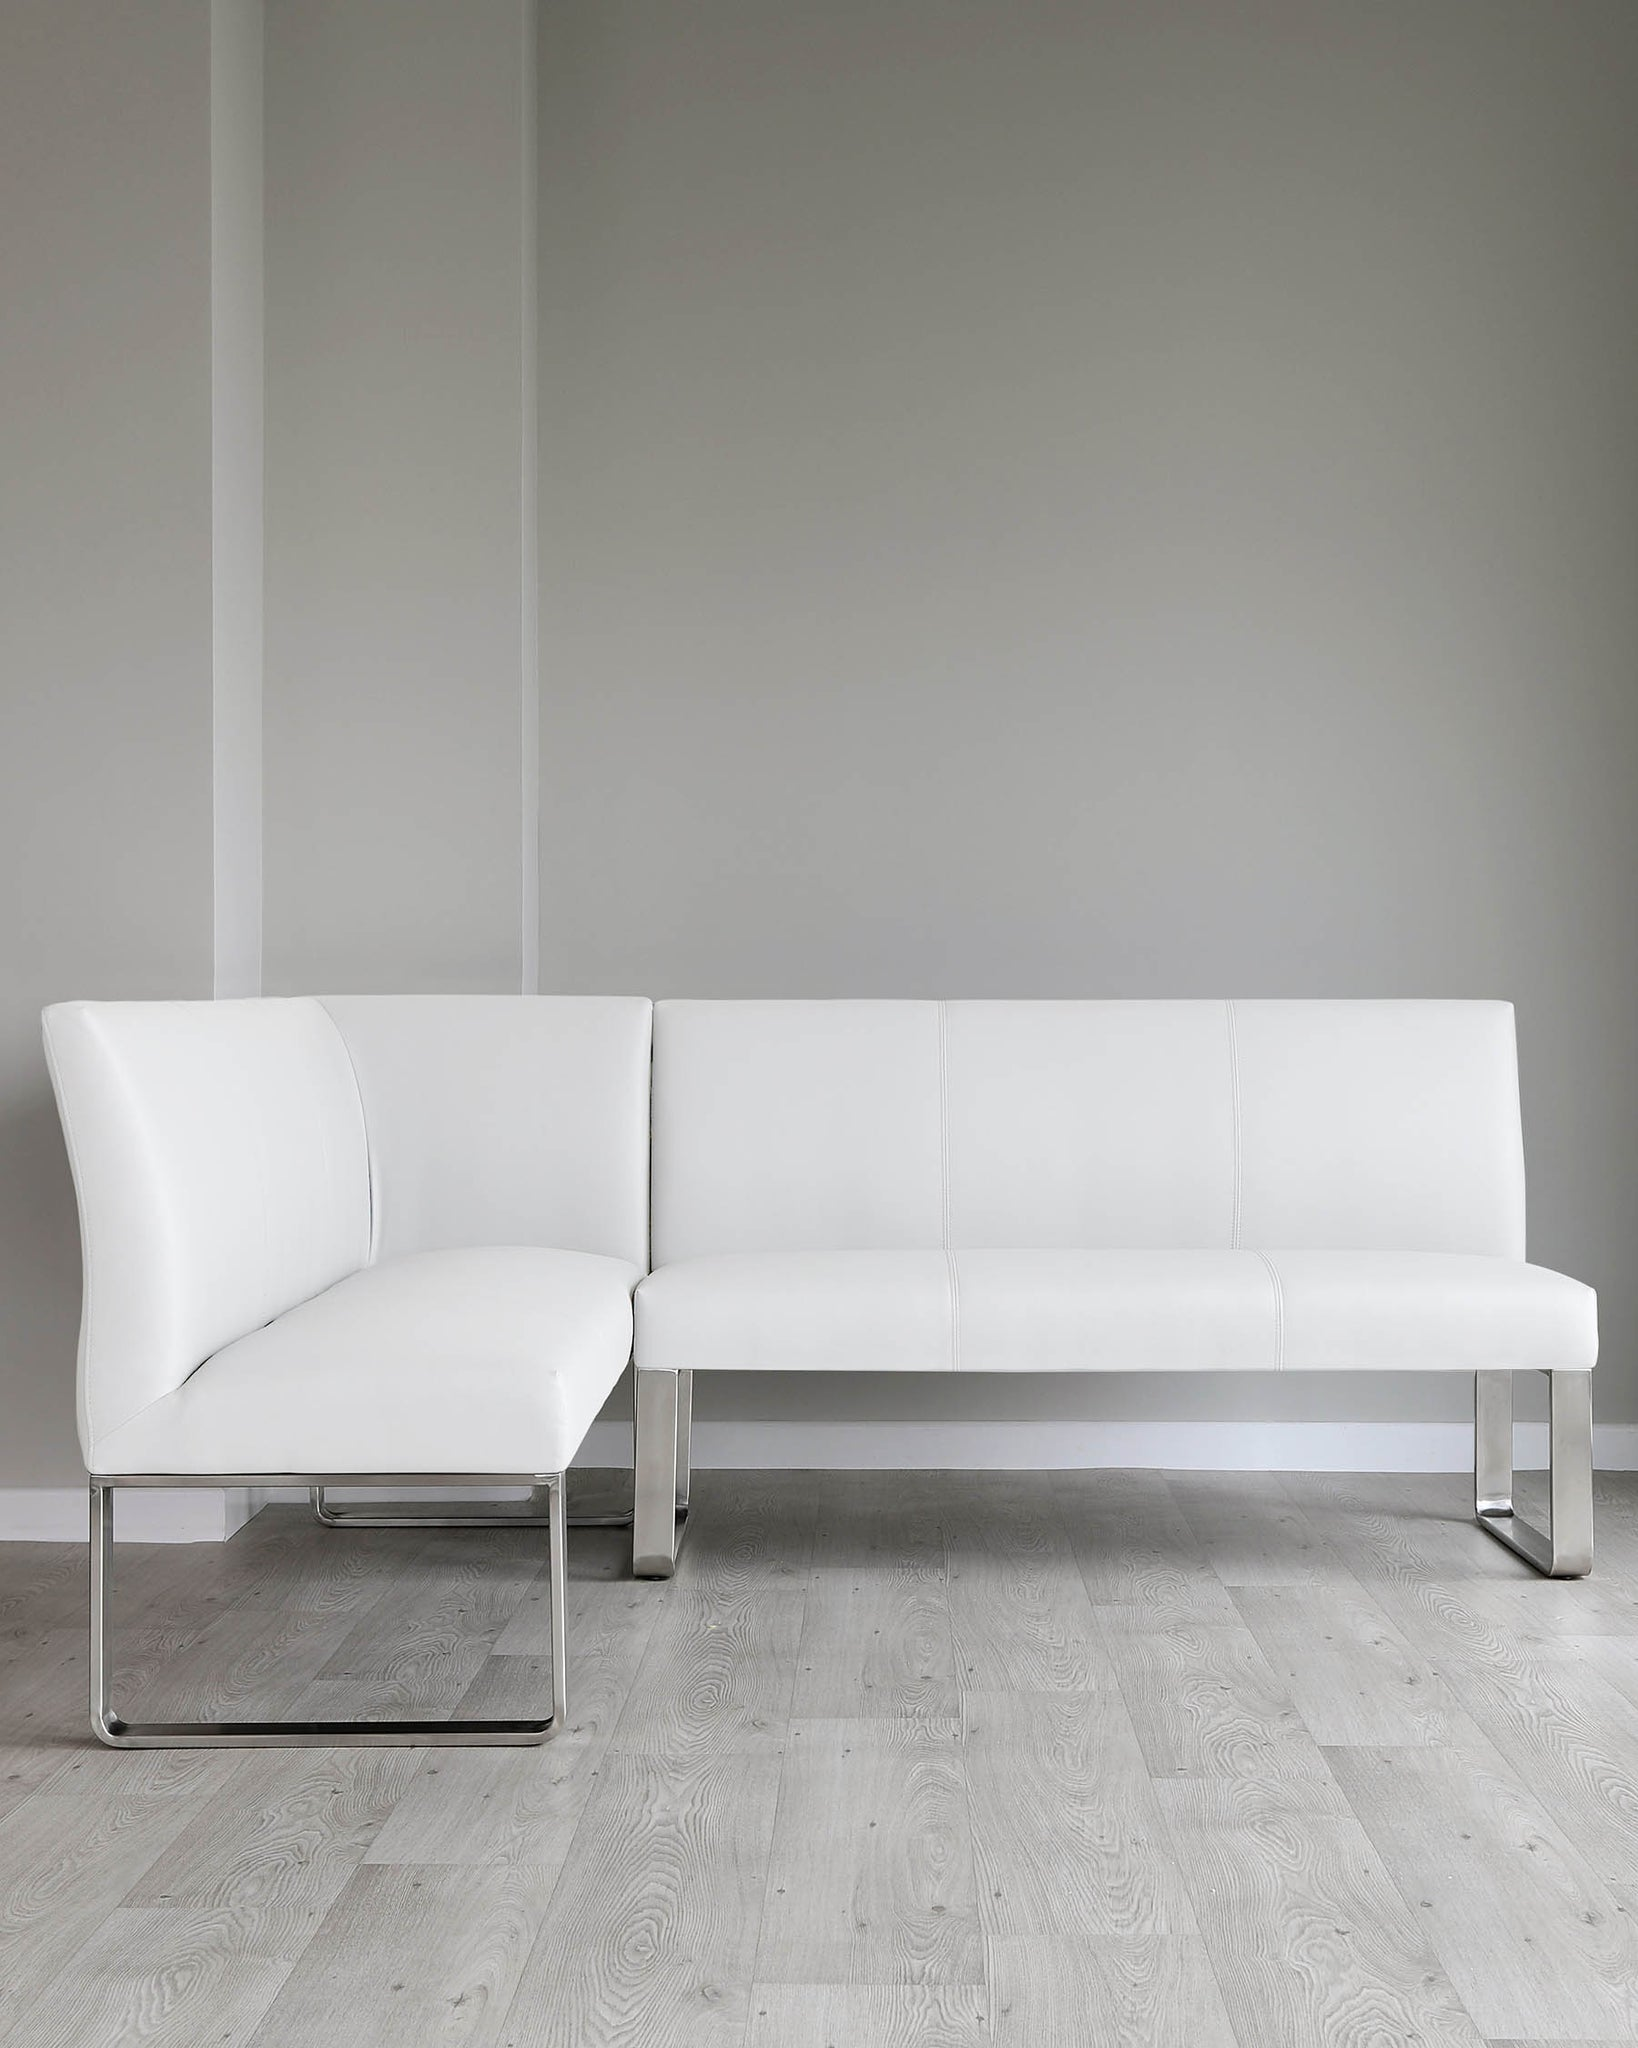 Sanza White Gloss And Loop 5 Seater Right Hand Corner Bench Dining Set